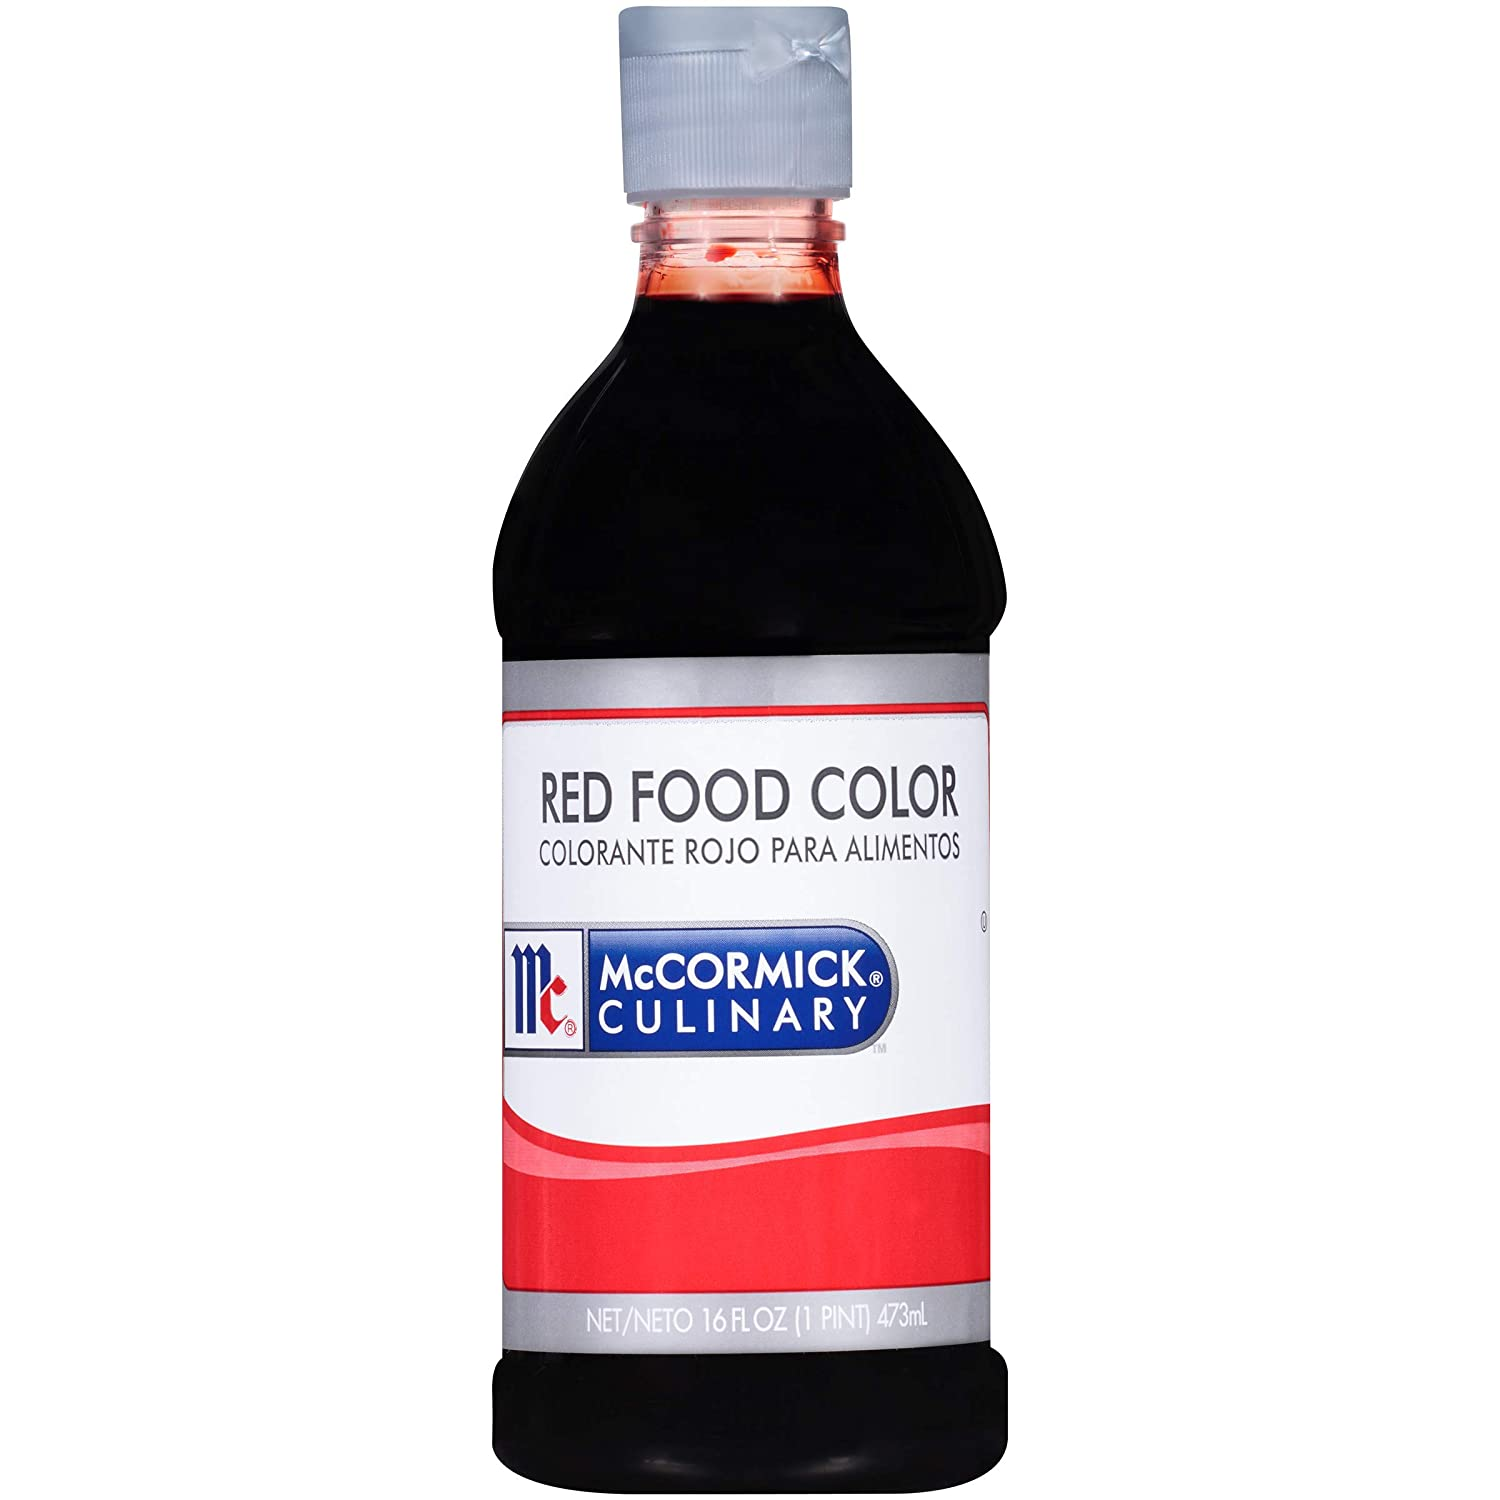 McCormick Culinary Red Food Color, 16 fl oz